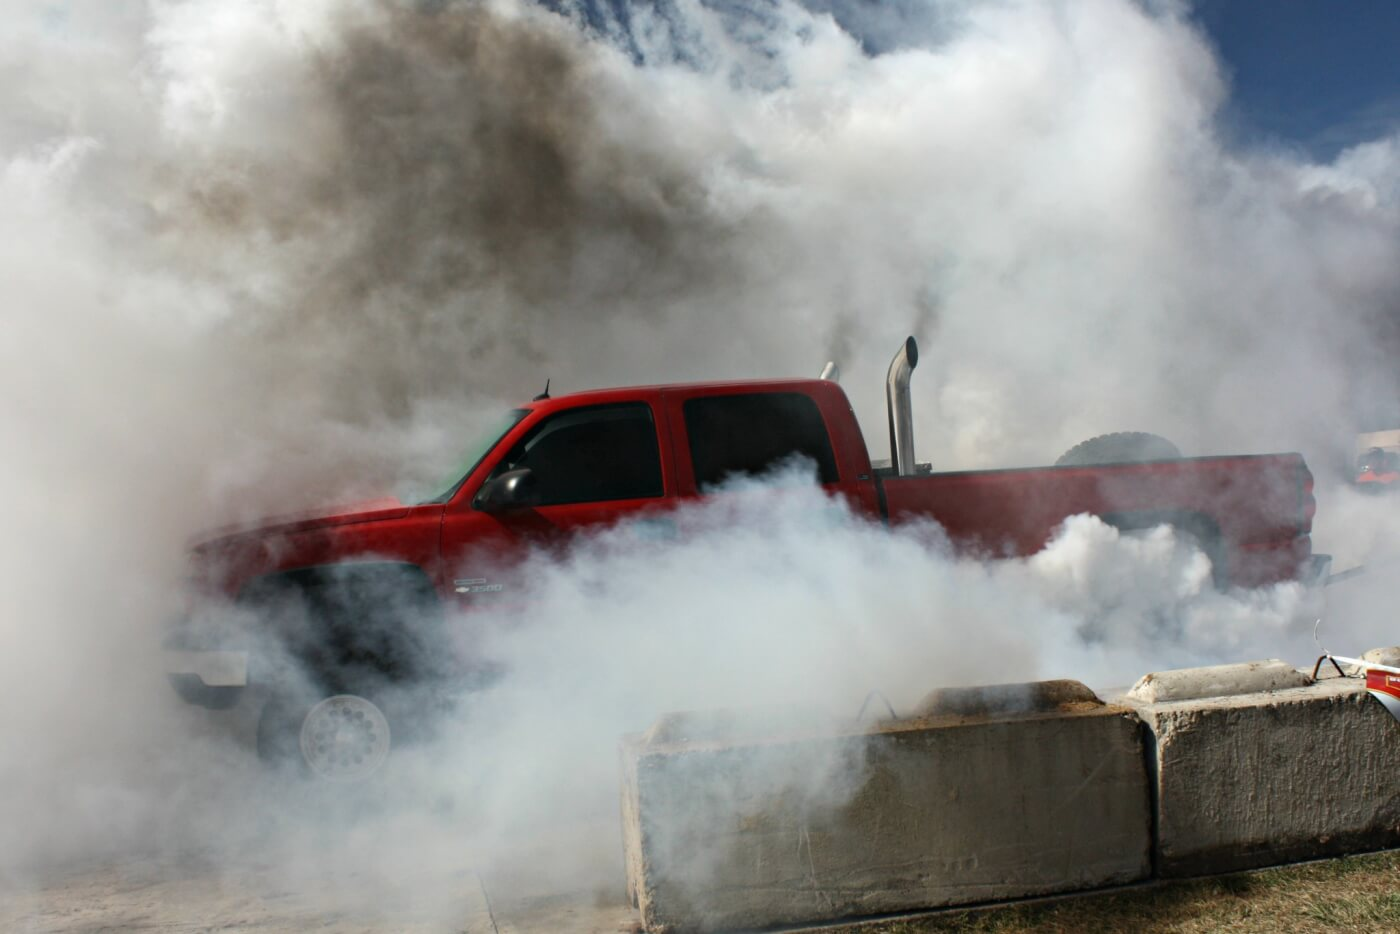 Not a whole lot to say about the burnout contest other than this guy was the obvious winner.